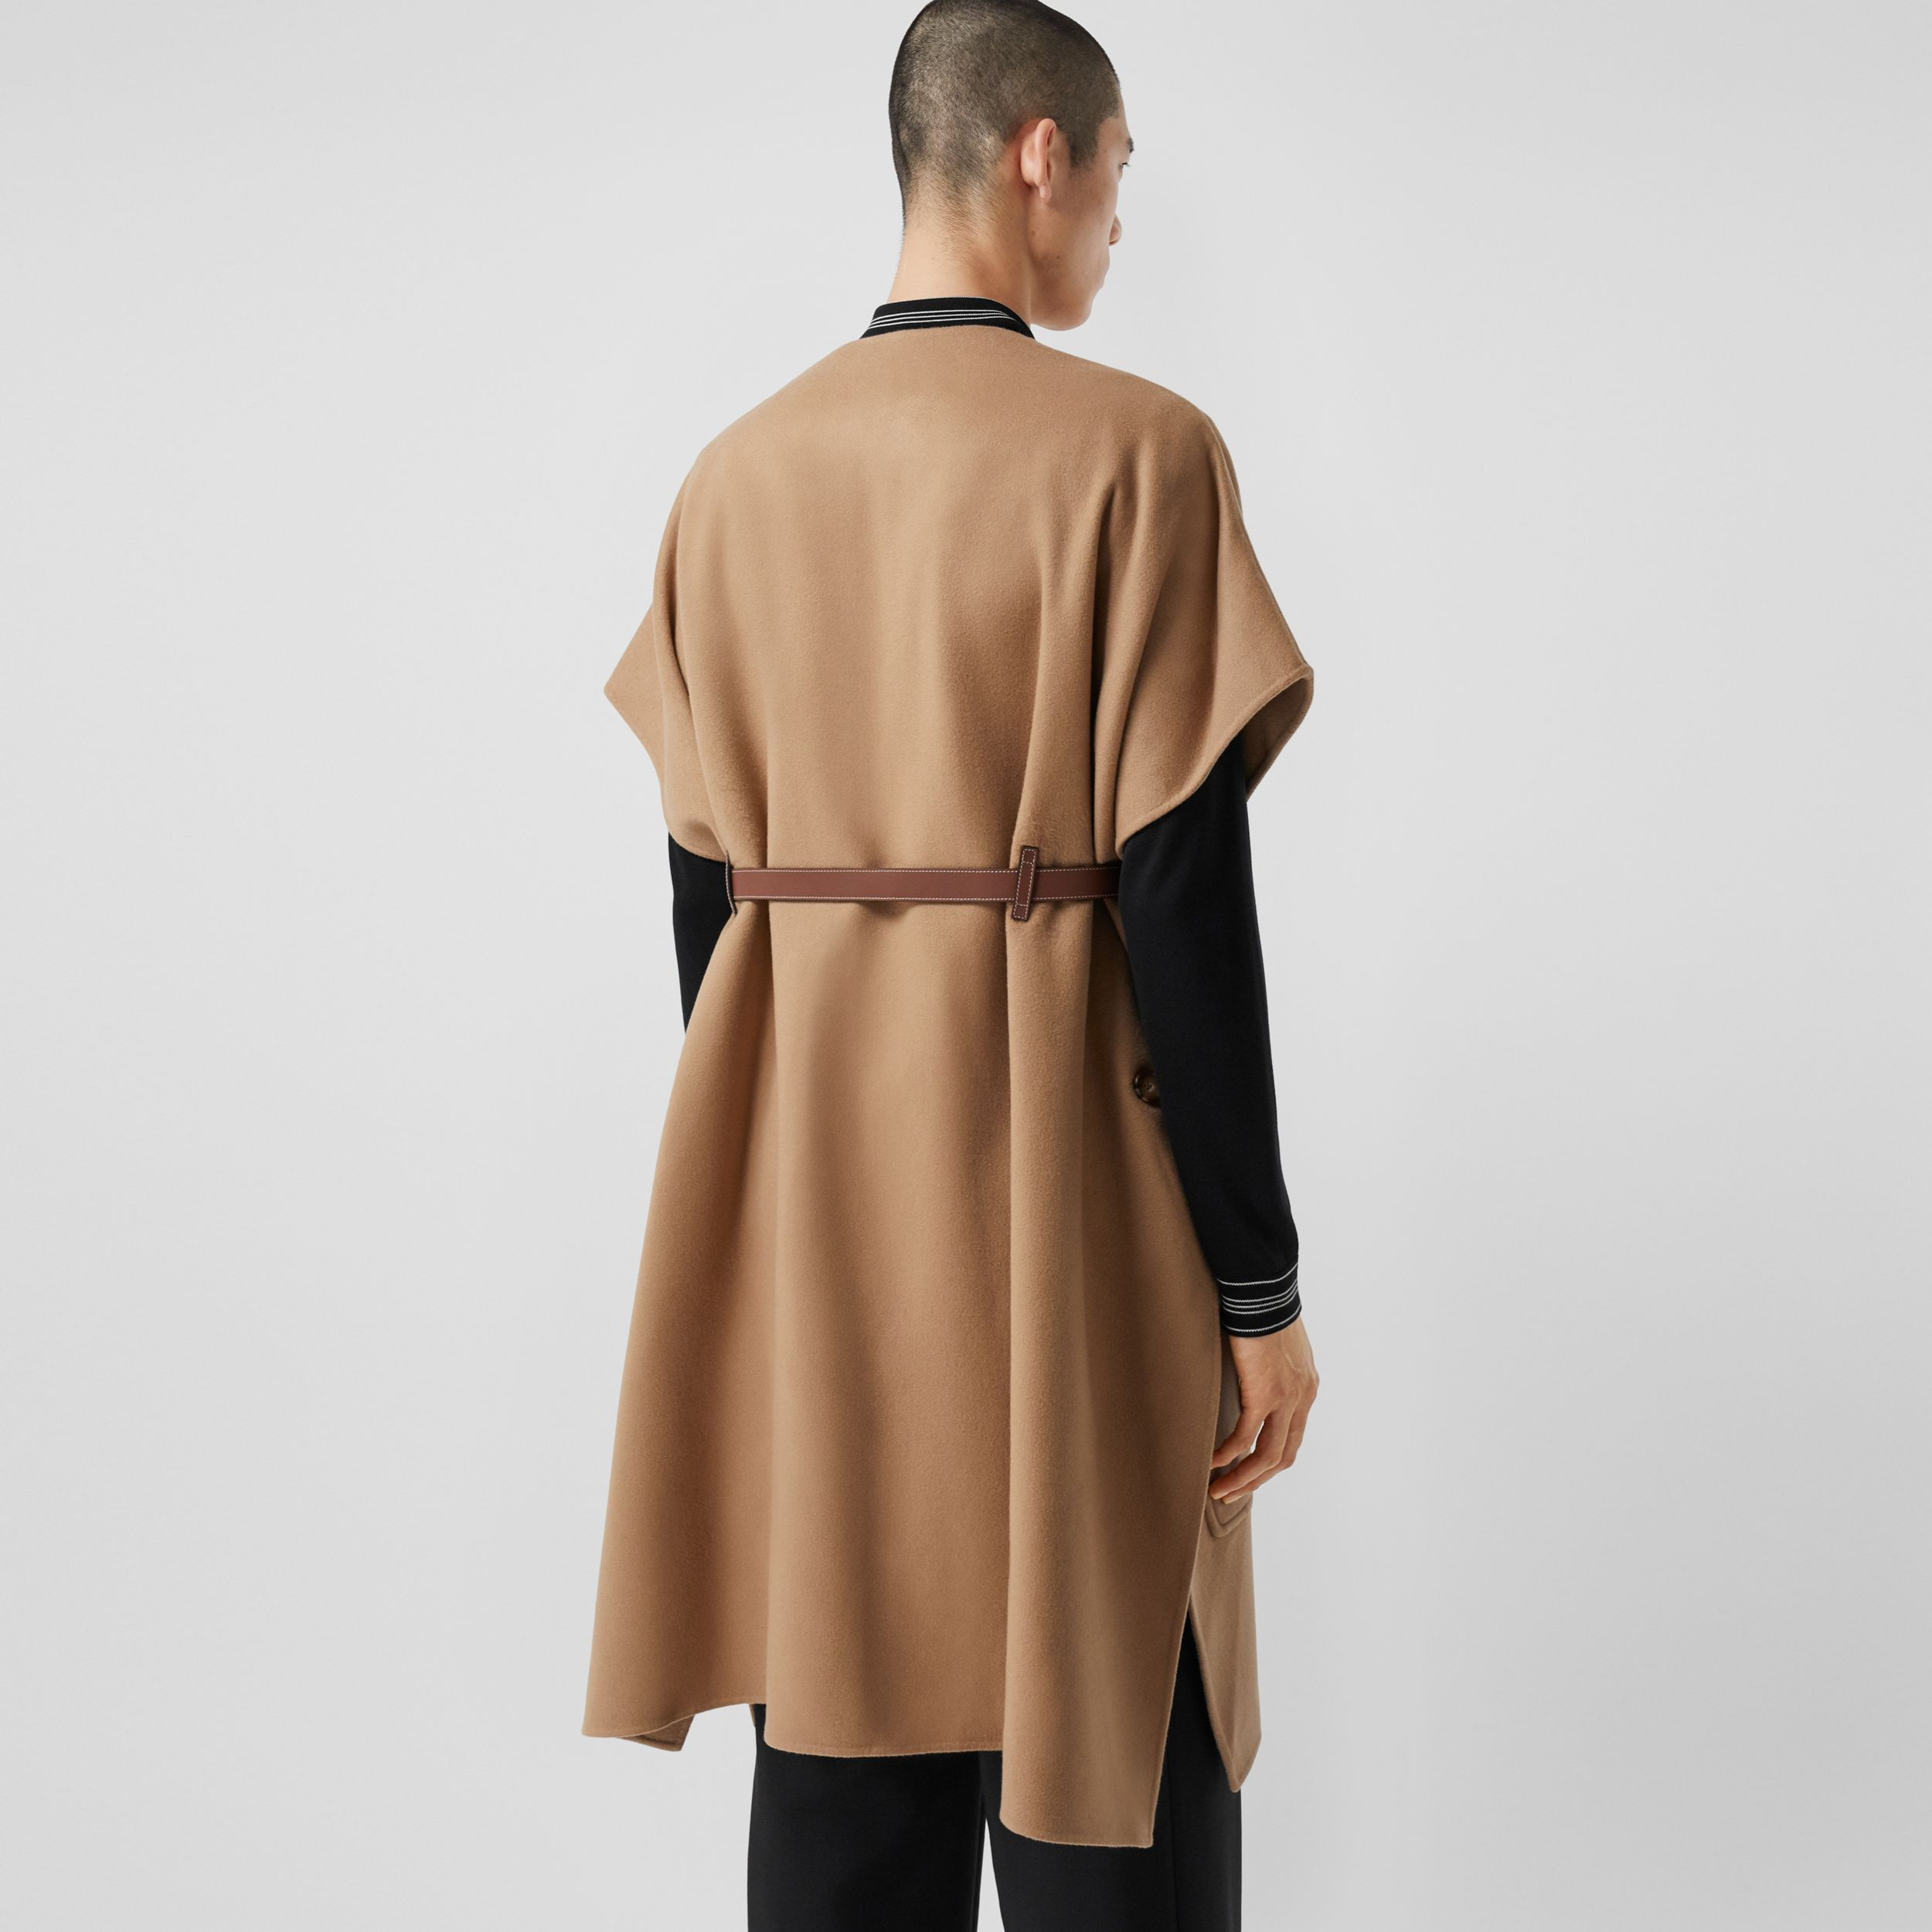 Short-sleeve Double-faced Cashmere Belted Cape – Unisex in Camel - Women | Burberry Australia - 3